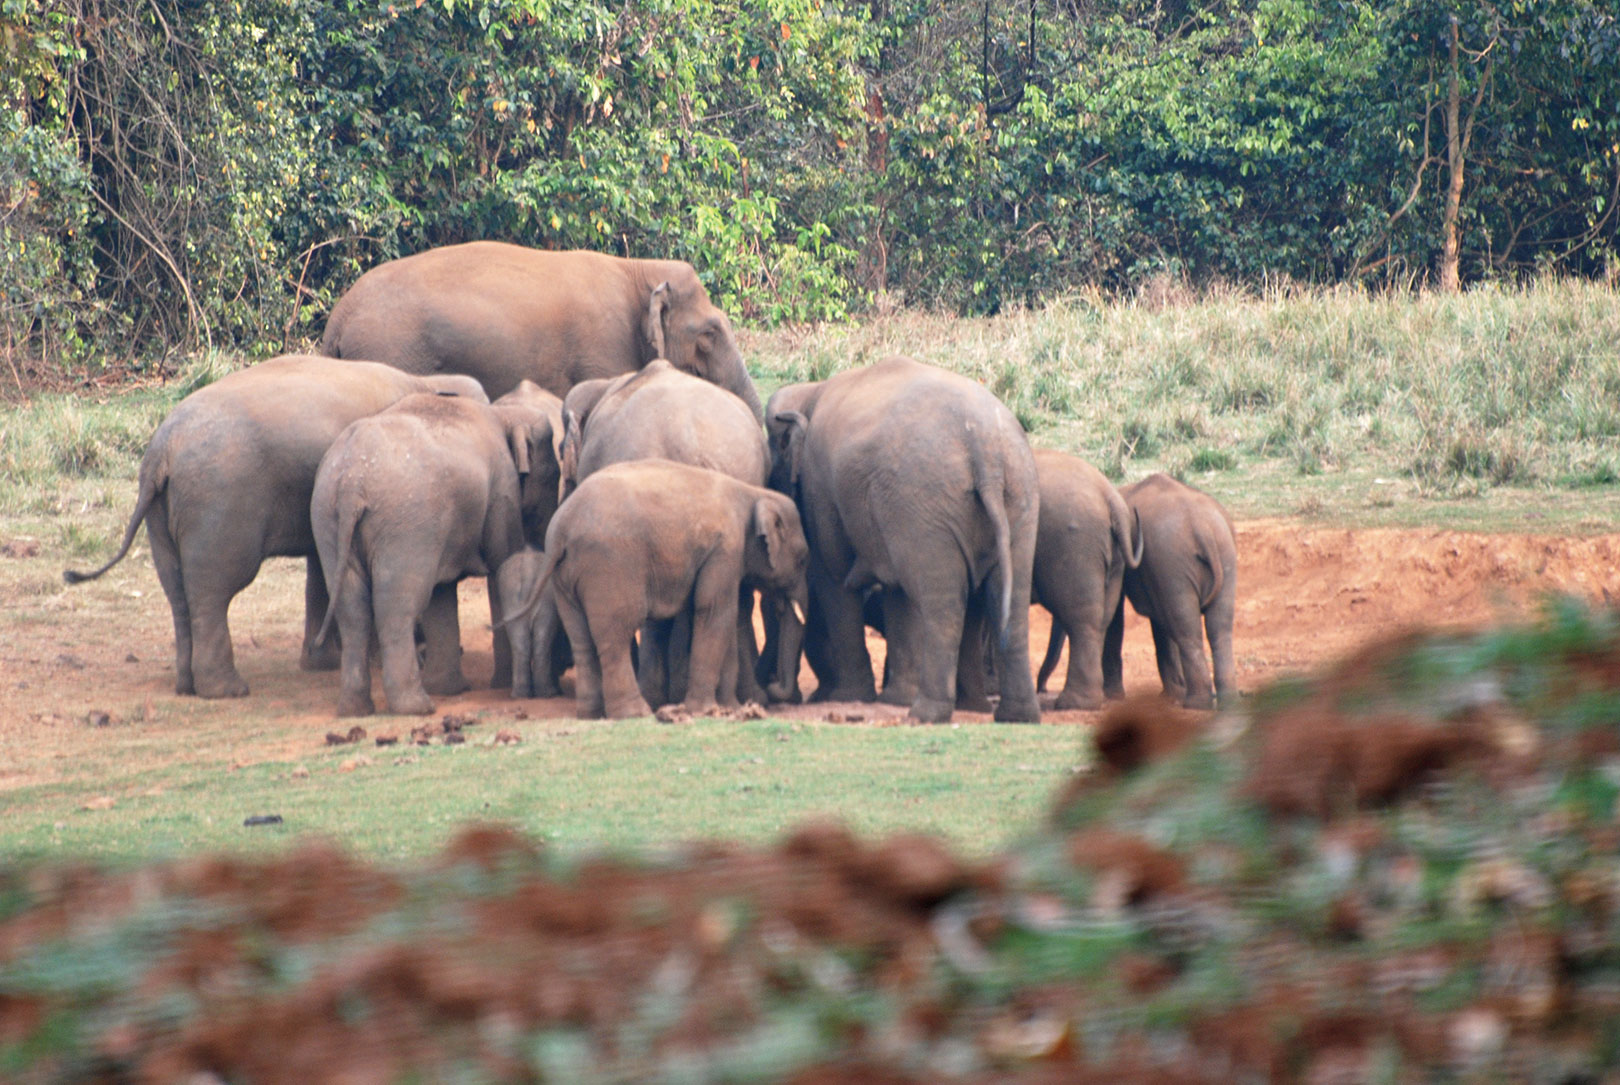 Elephants migrate long distances in search of food and shelter across states and countries.